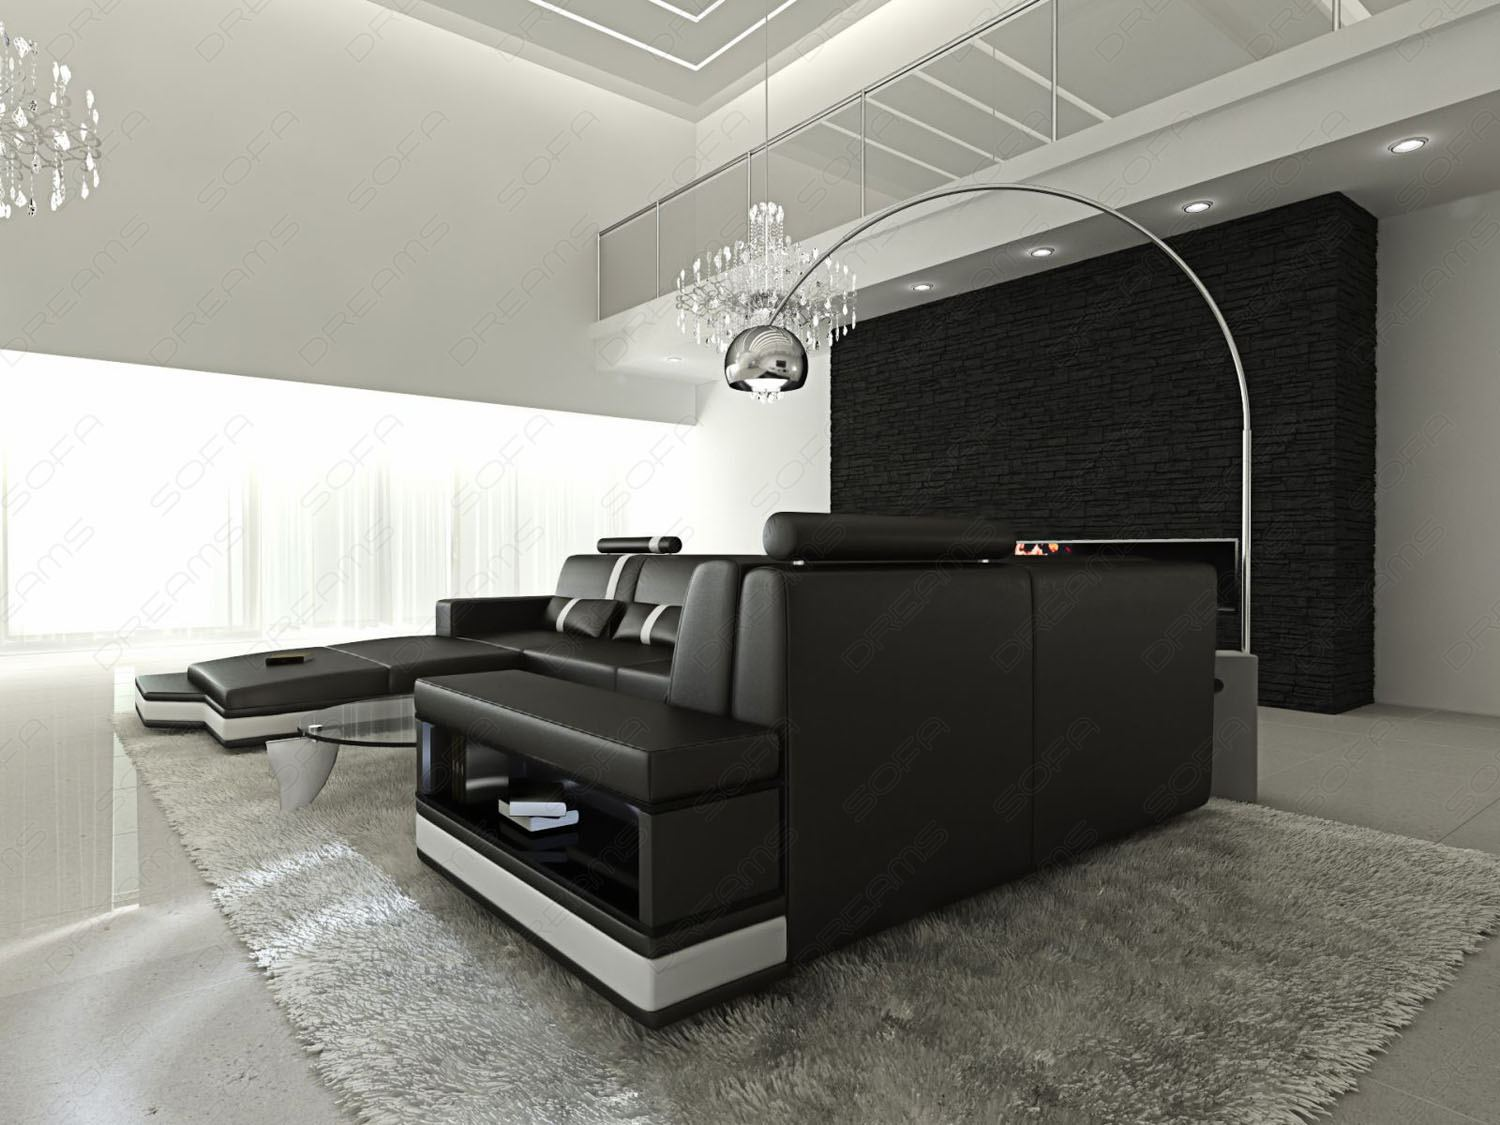 ledersofa messana schwarz weiss designersofa beleuchtung. Black Bedroom Furniture Sets. Home Design Ideas